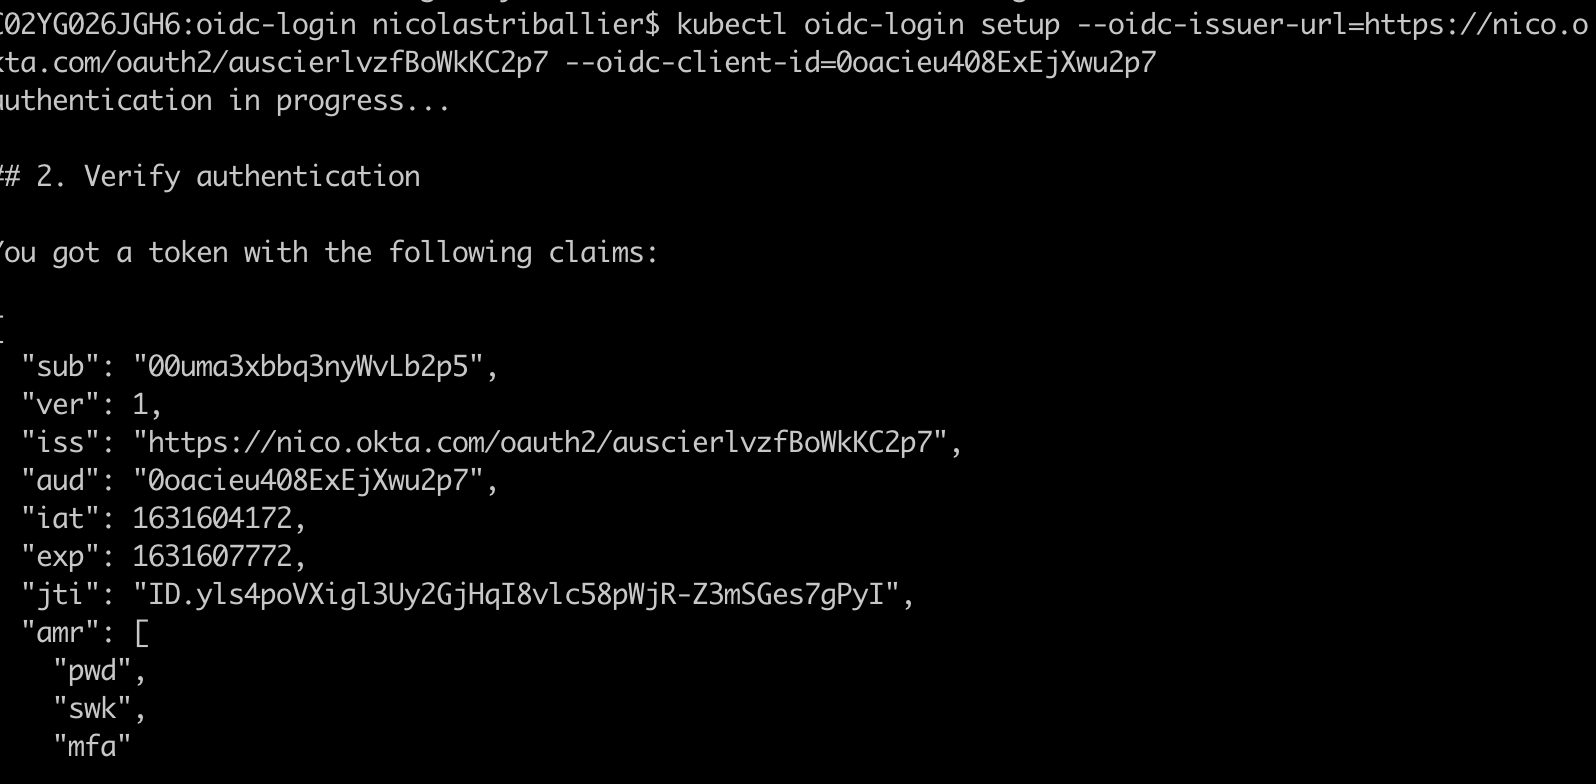 Terminal - Post Authentication Notes